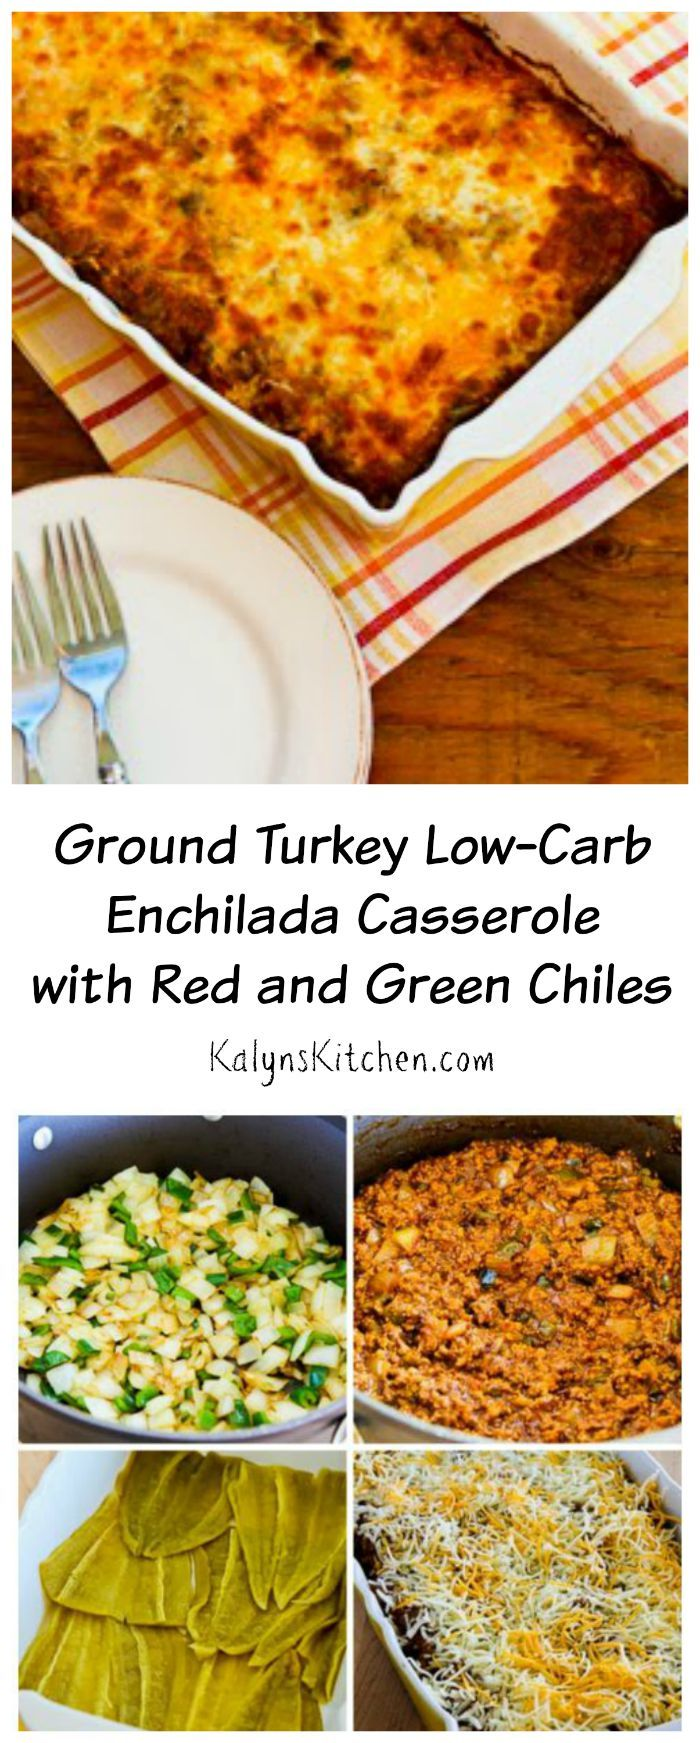 Add this Ground Turkey Low-Carb Enchilada Casserole with Red and Green Chiles to your #BackToSchool recipe collection; the family will love this one! [from KalynsKitchen.com] #LowCarb #Casserole